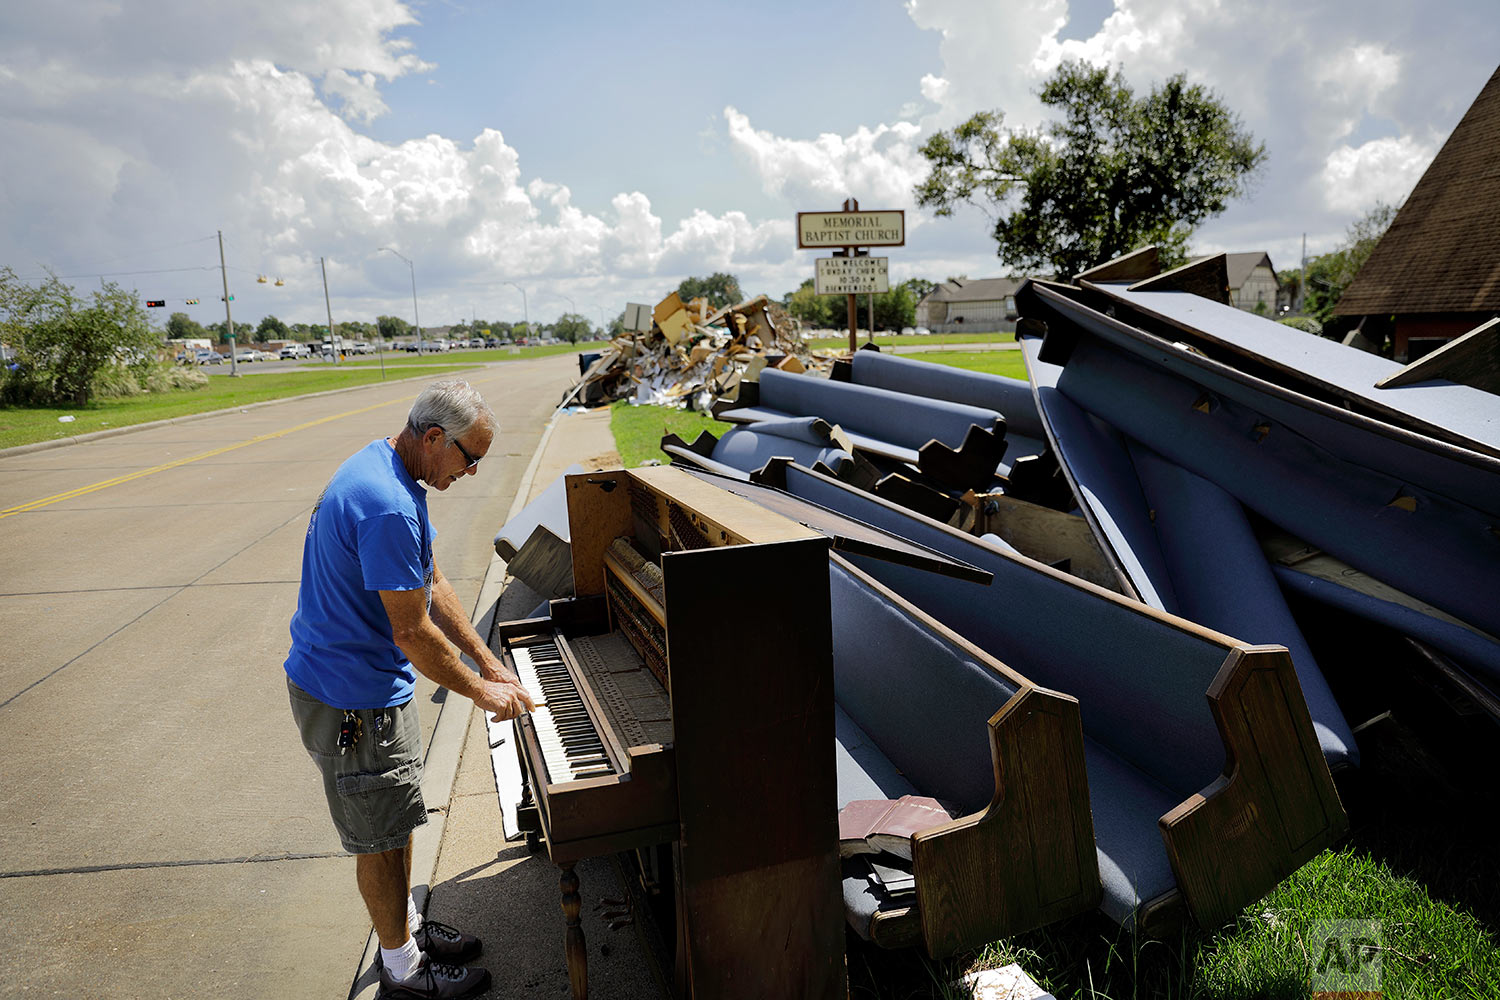 """Wayne Christopher plays the keys on a piano put out on the curb in Port Arthur, Texas, Monday, Sept. 25, 2017, next to pews from the Memorial Baptist Church which he'd attended his whole life. The damage was caused by Hurricane Harvey a month earlier. """"He's not too up on global warming, and that's a shame,"""" Christopher said of the president he supported in November, and supports still. He also believes in the consensus among scientists that climate change is real and that this disastrous run of weather, from droughts in the west to wildfires to catastrophic hurricanes along the coasts, is a preview of the future if the country doesn't begin to take the problem seriously. (AP Photo/David Goldman)"""